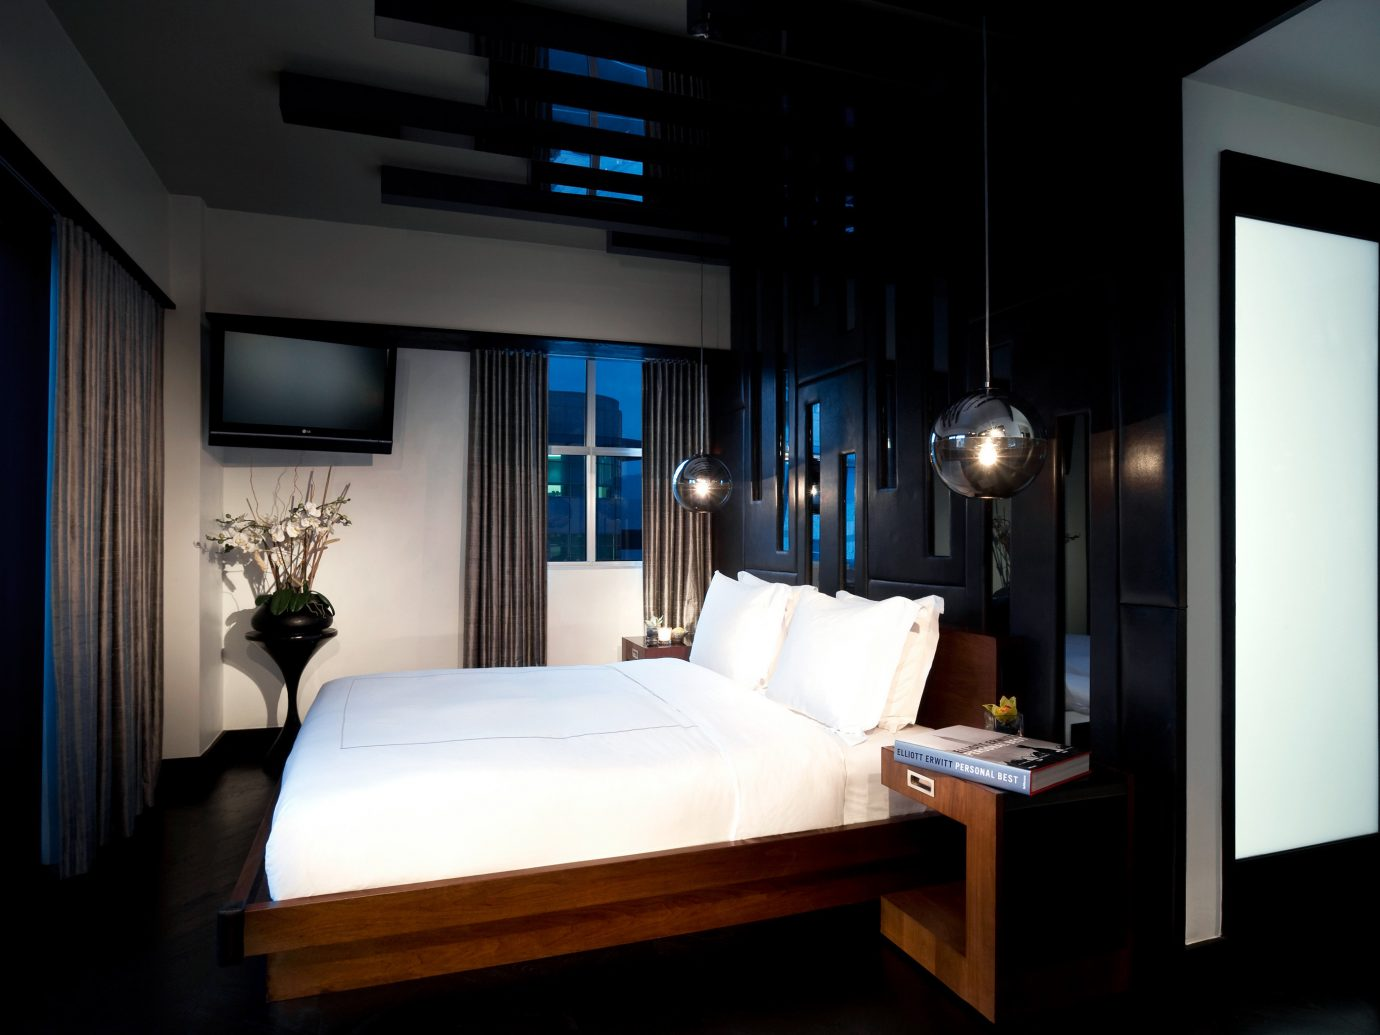 Bedroom Design Hip Hotels Modern Nightlife Party indoor wall floor room ceiling house interior design Suite lighting home living room estate